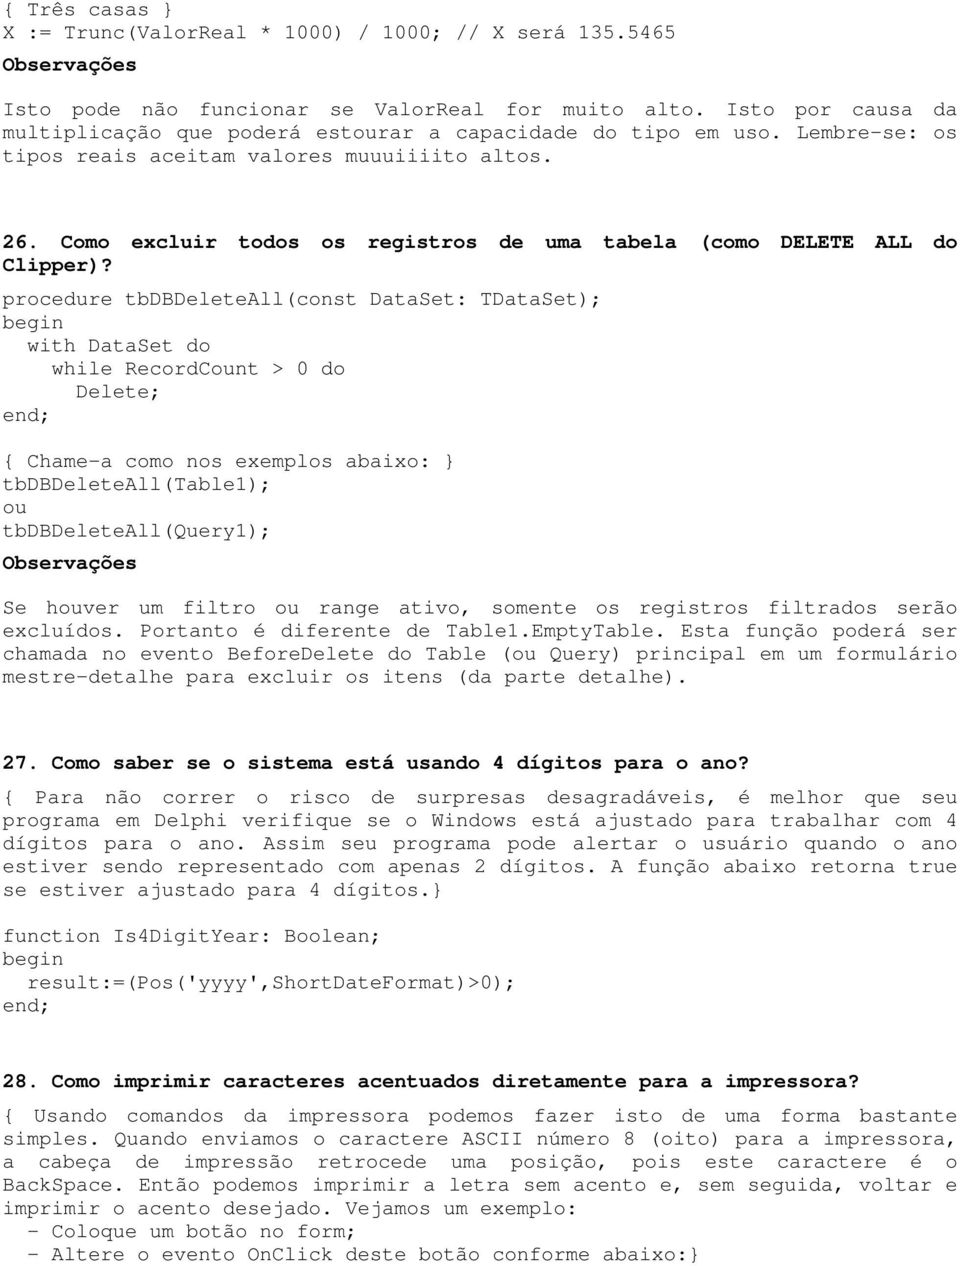 Como excluir todos os registros de uma tabela (como DELETE ALL do Clipper)?